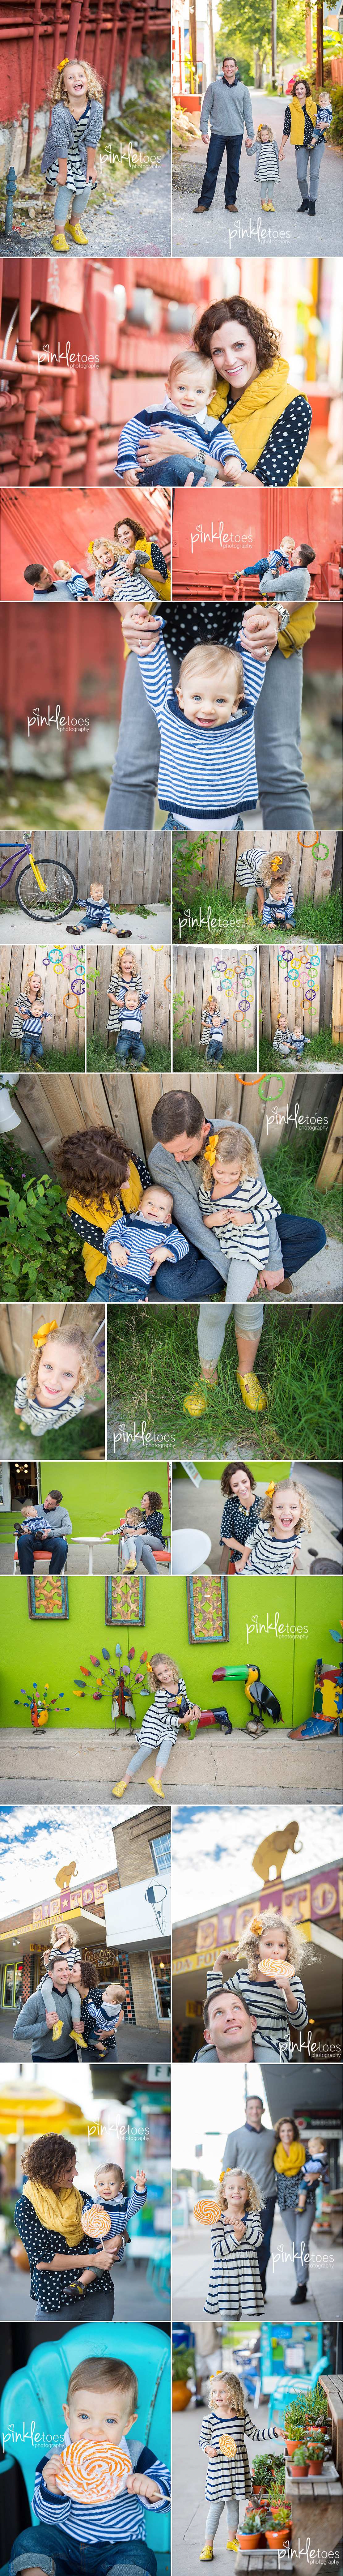 kk-urban-soco-south-congress-austin-family-fun-colorful-child-best-kid-photographer